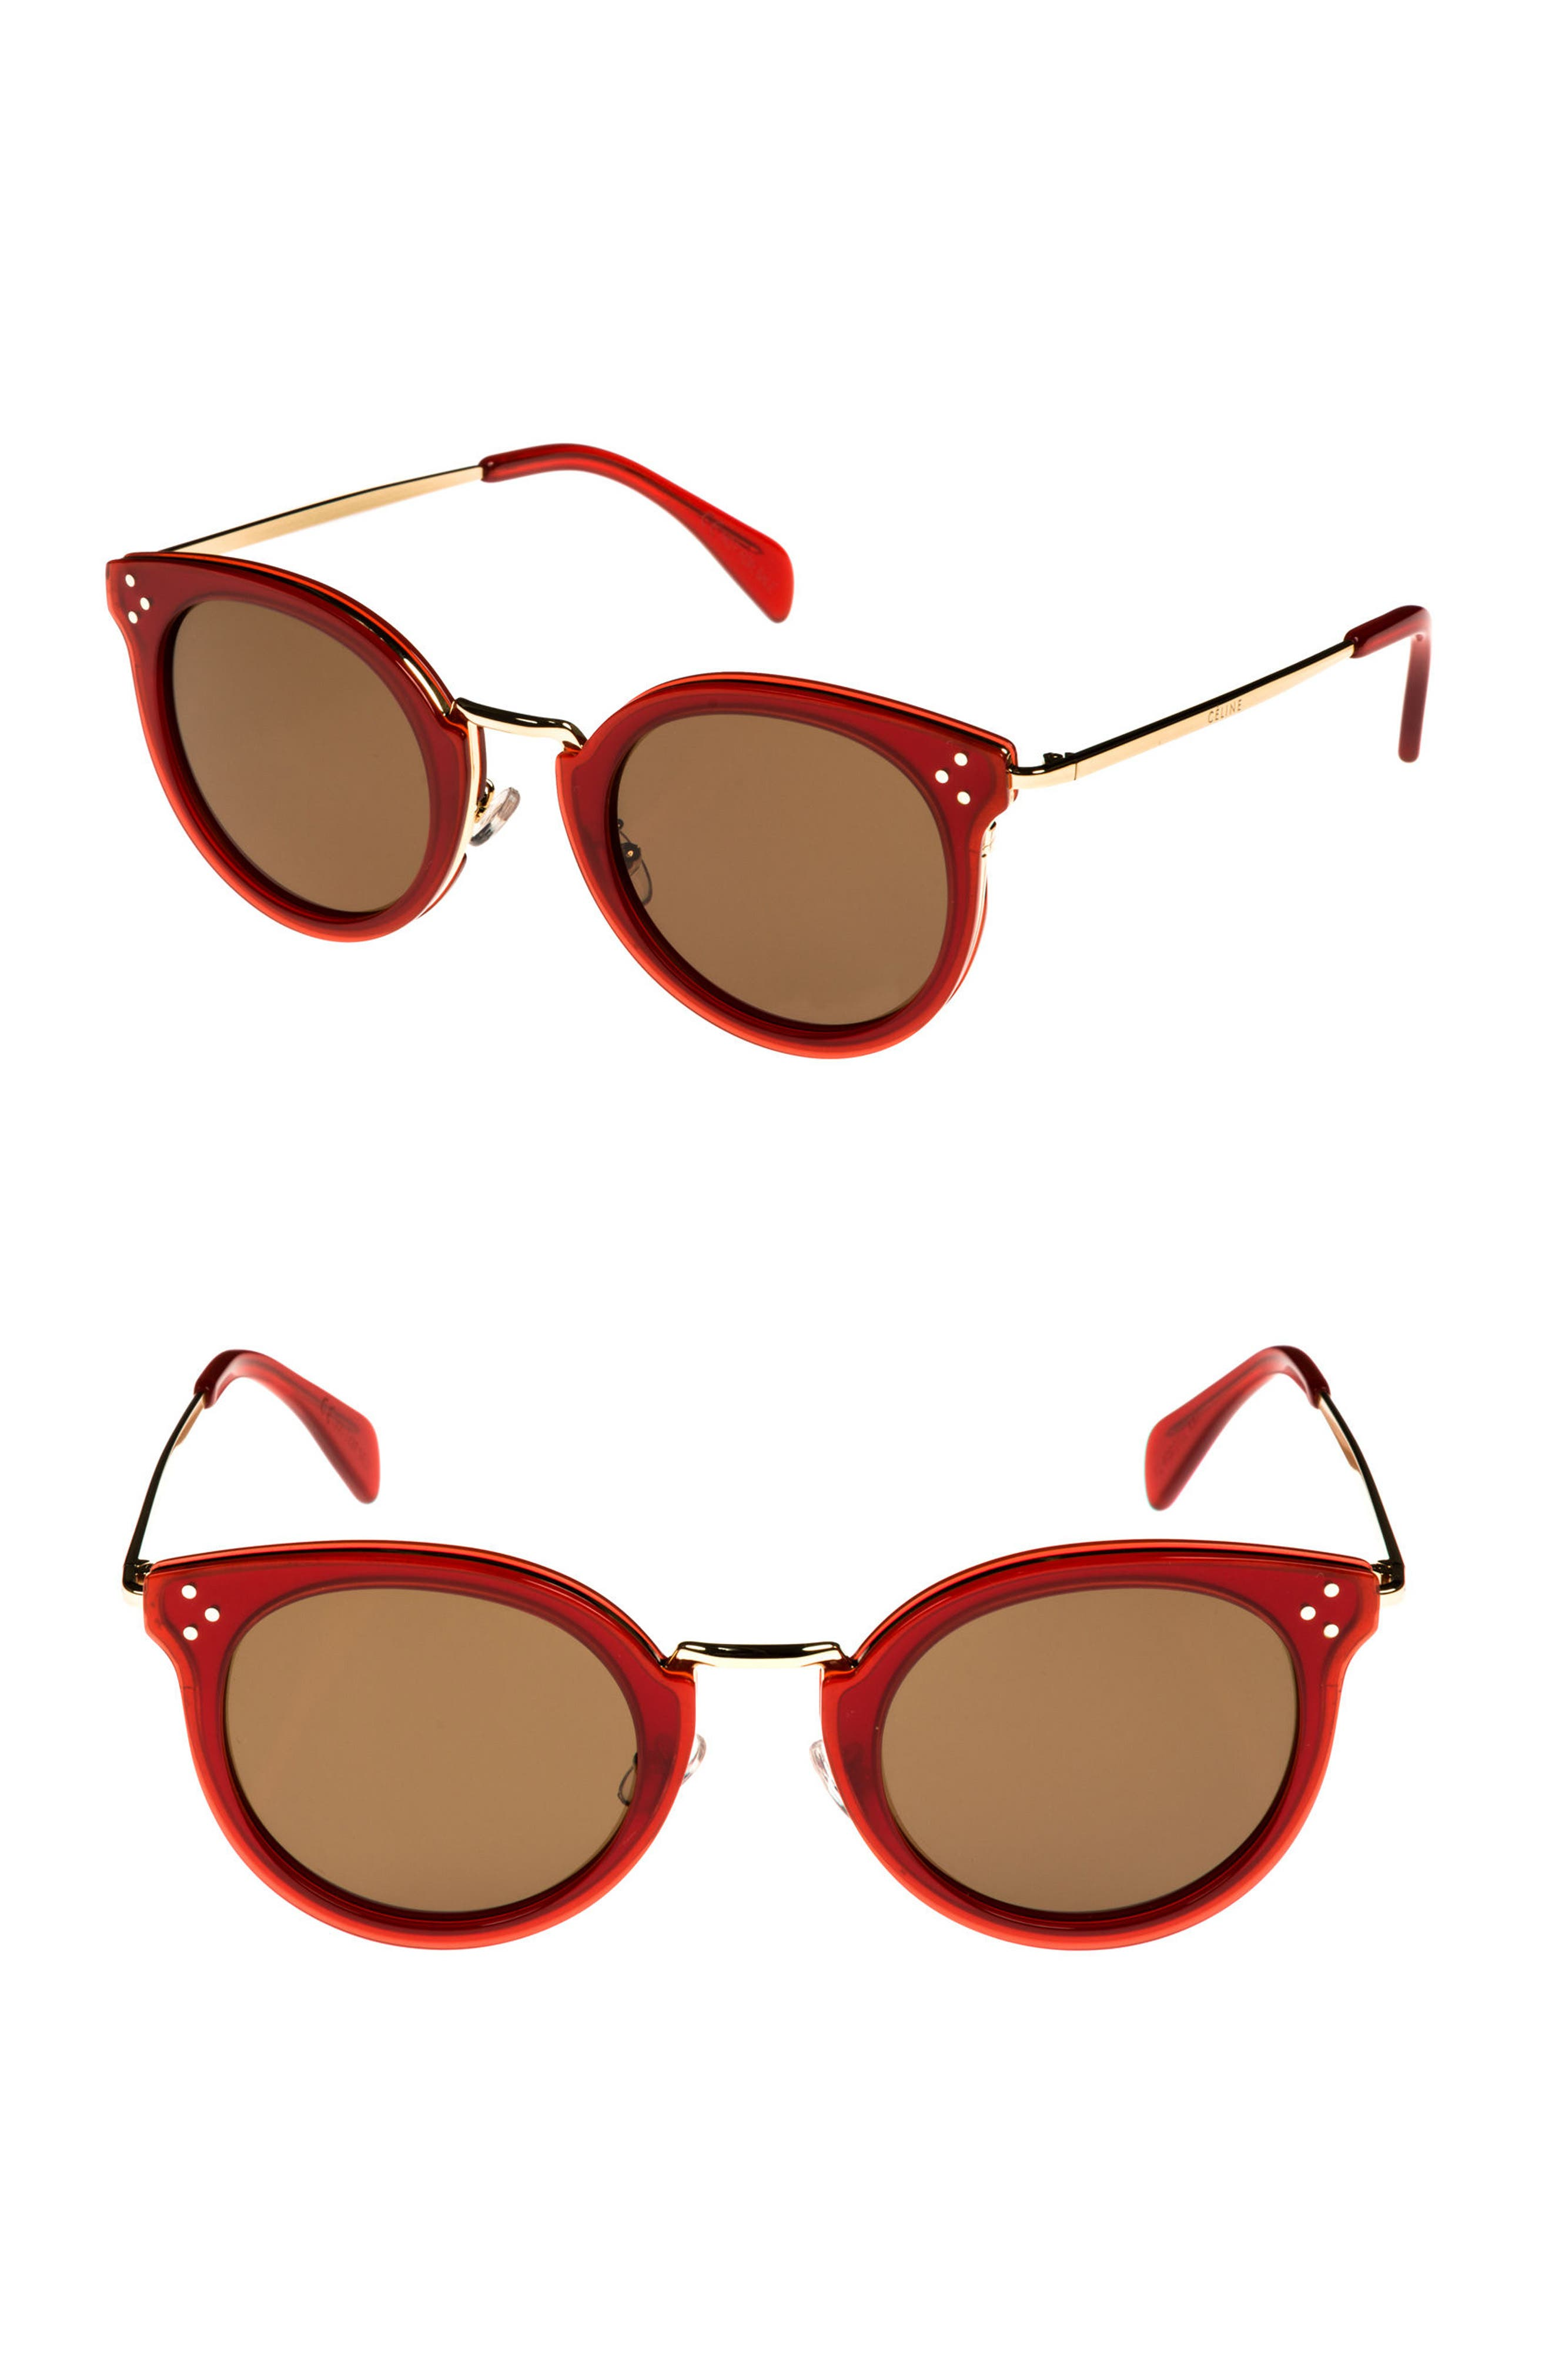 49mm Round Sunglasses,                         Main,                         color, Milky Red/ Pale Gold